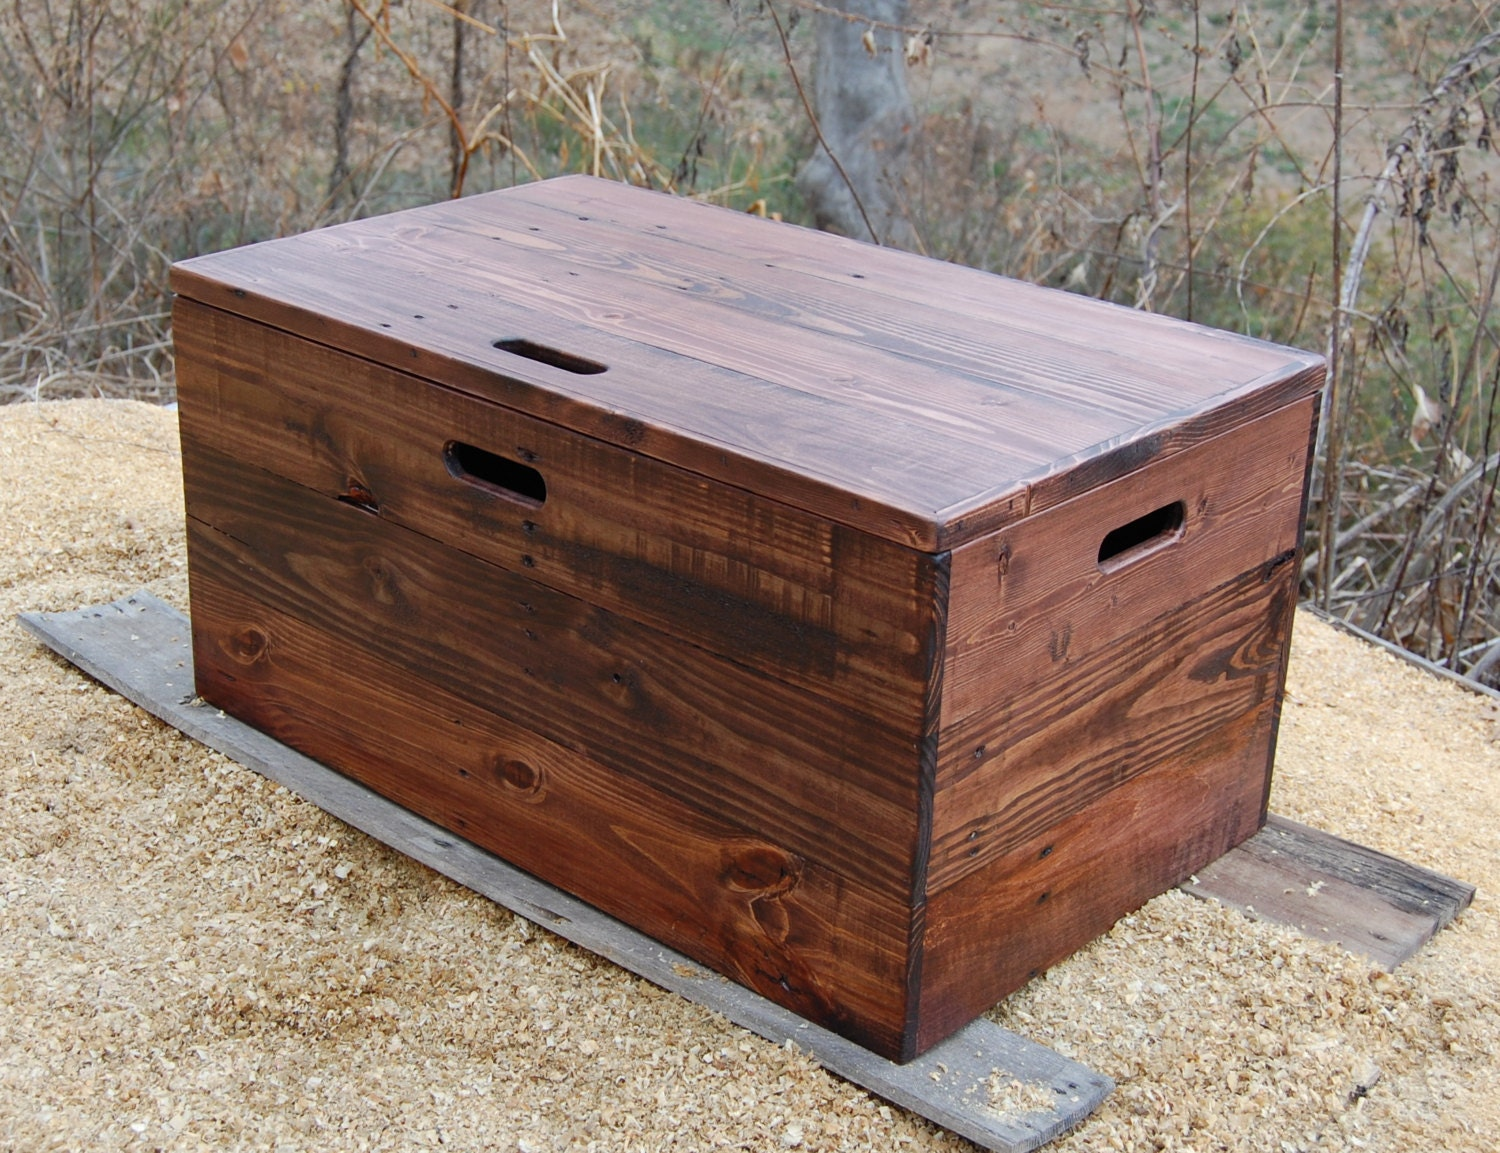 Wooden Crate Coffee Table Toy Chest Large Storage Box Red